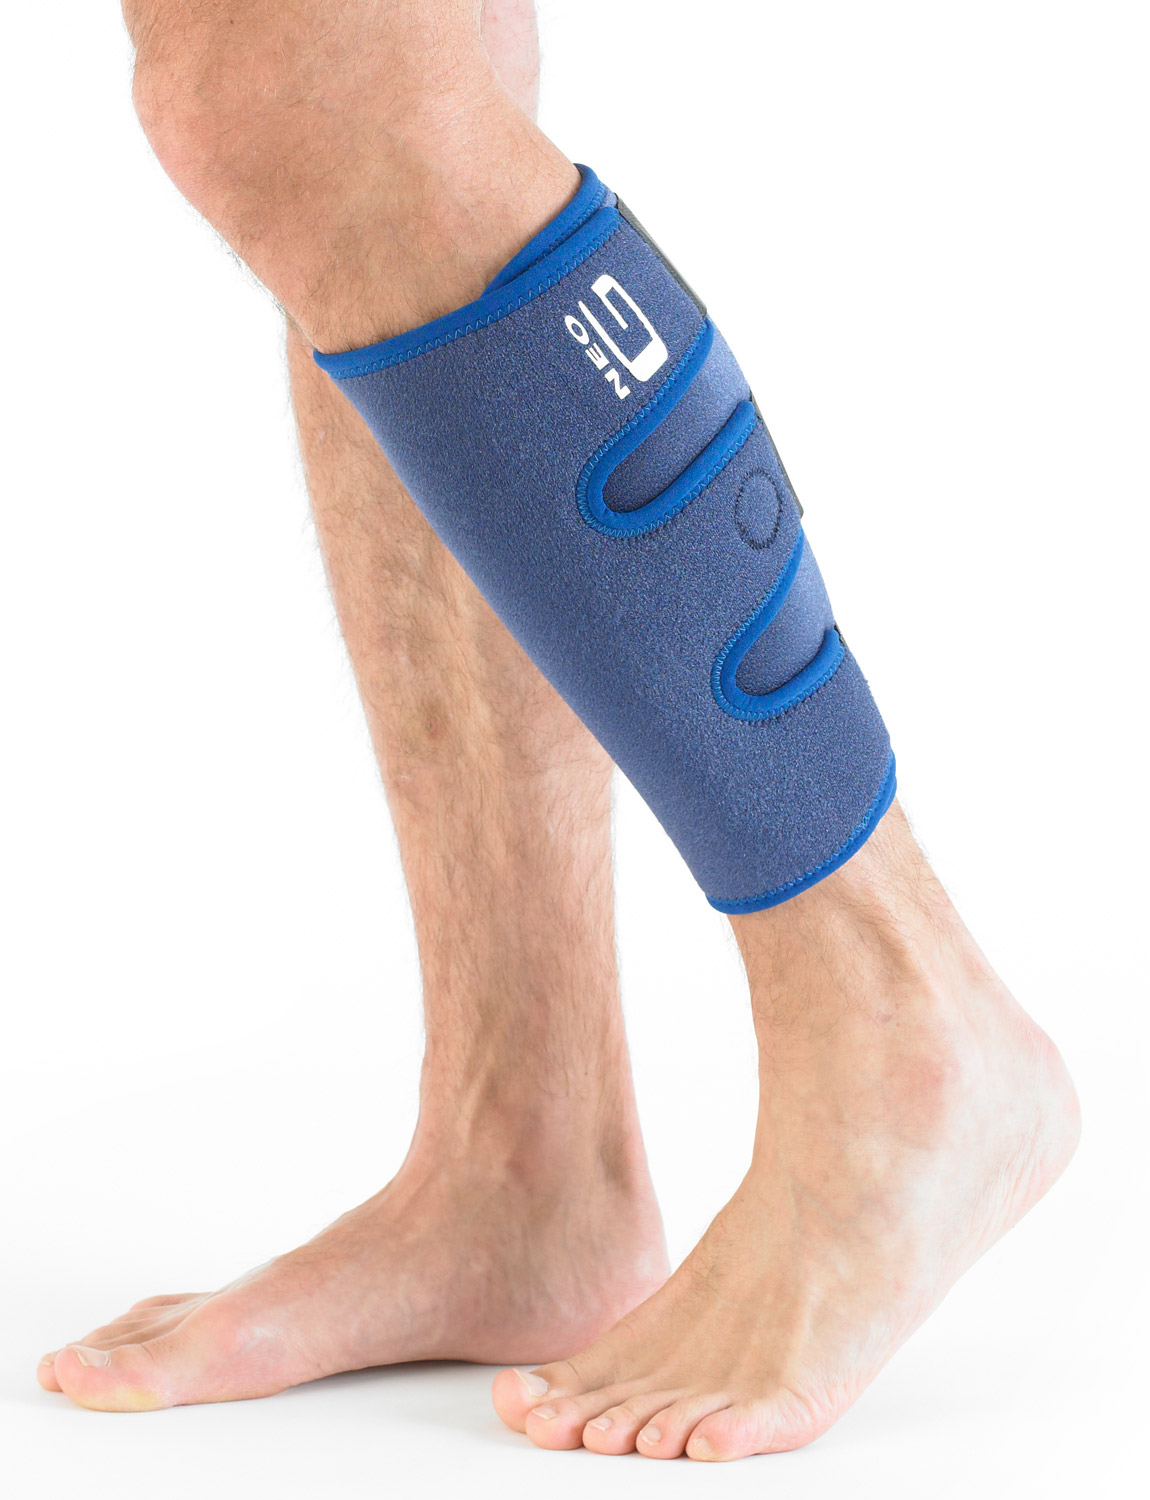 892 - CALF/SHIN SPLINT SUPPORT  The support is designed to help cushion and protect the anterior and posterior muscles of the calf to help with pain from strains, sprains and shin splints caused by occupational or sporting activities.